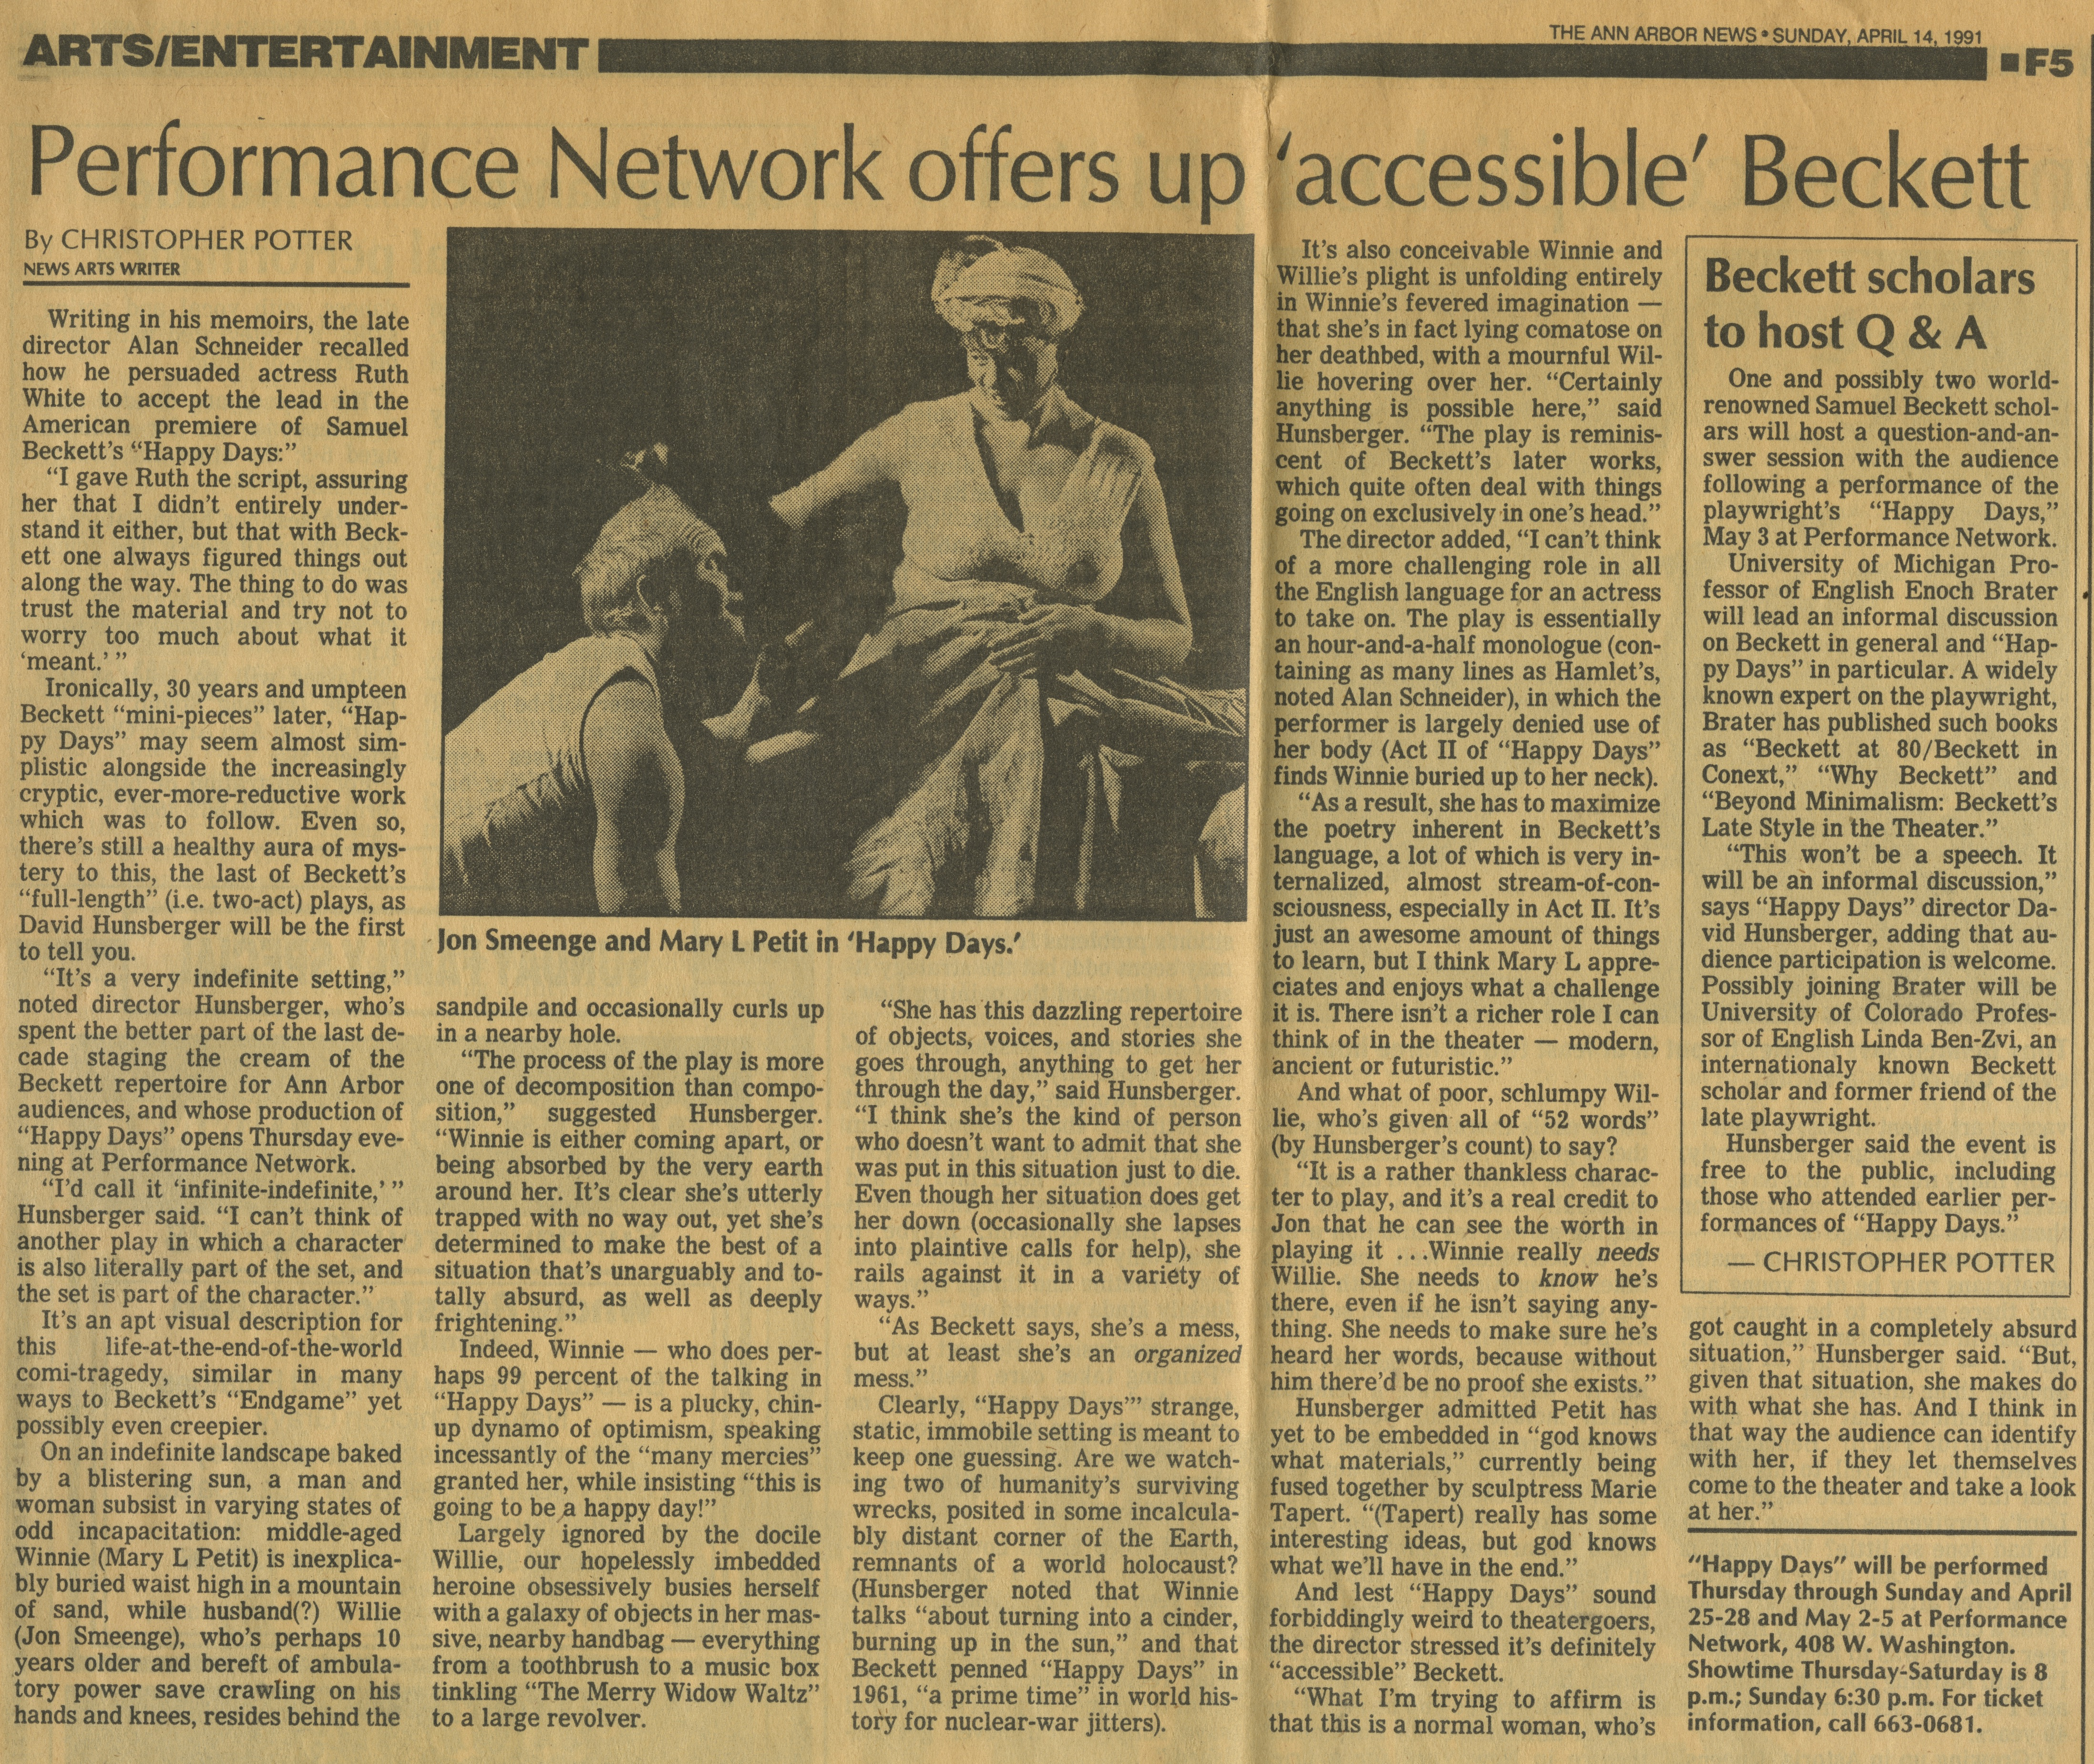 Performance Network offers up 'accessible' Beckett image